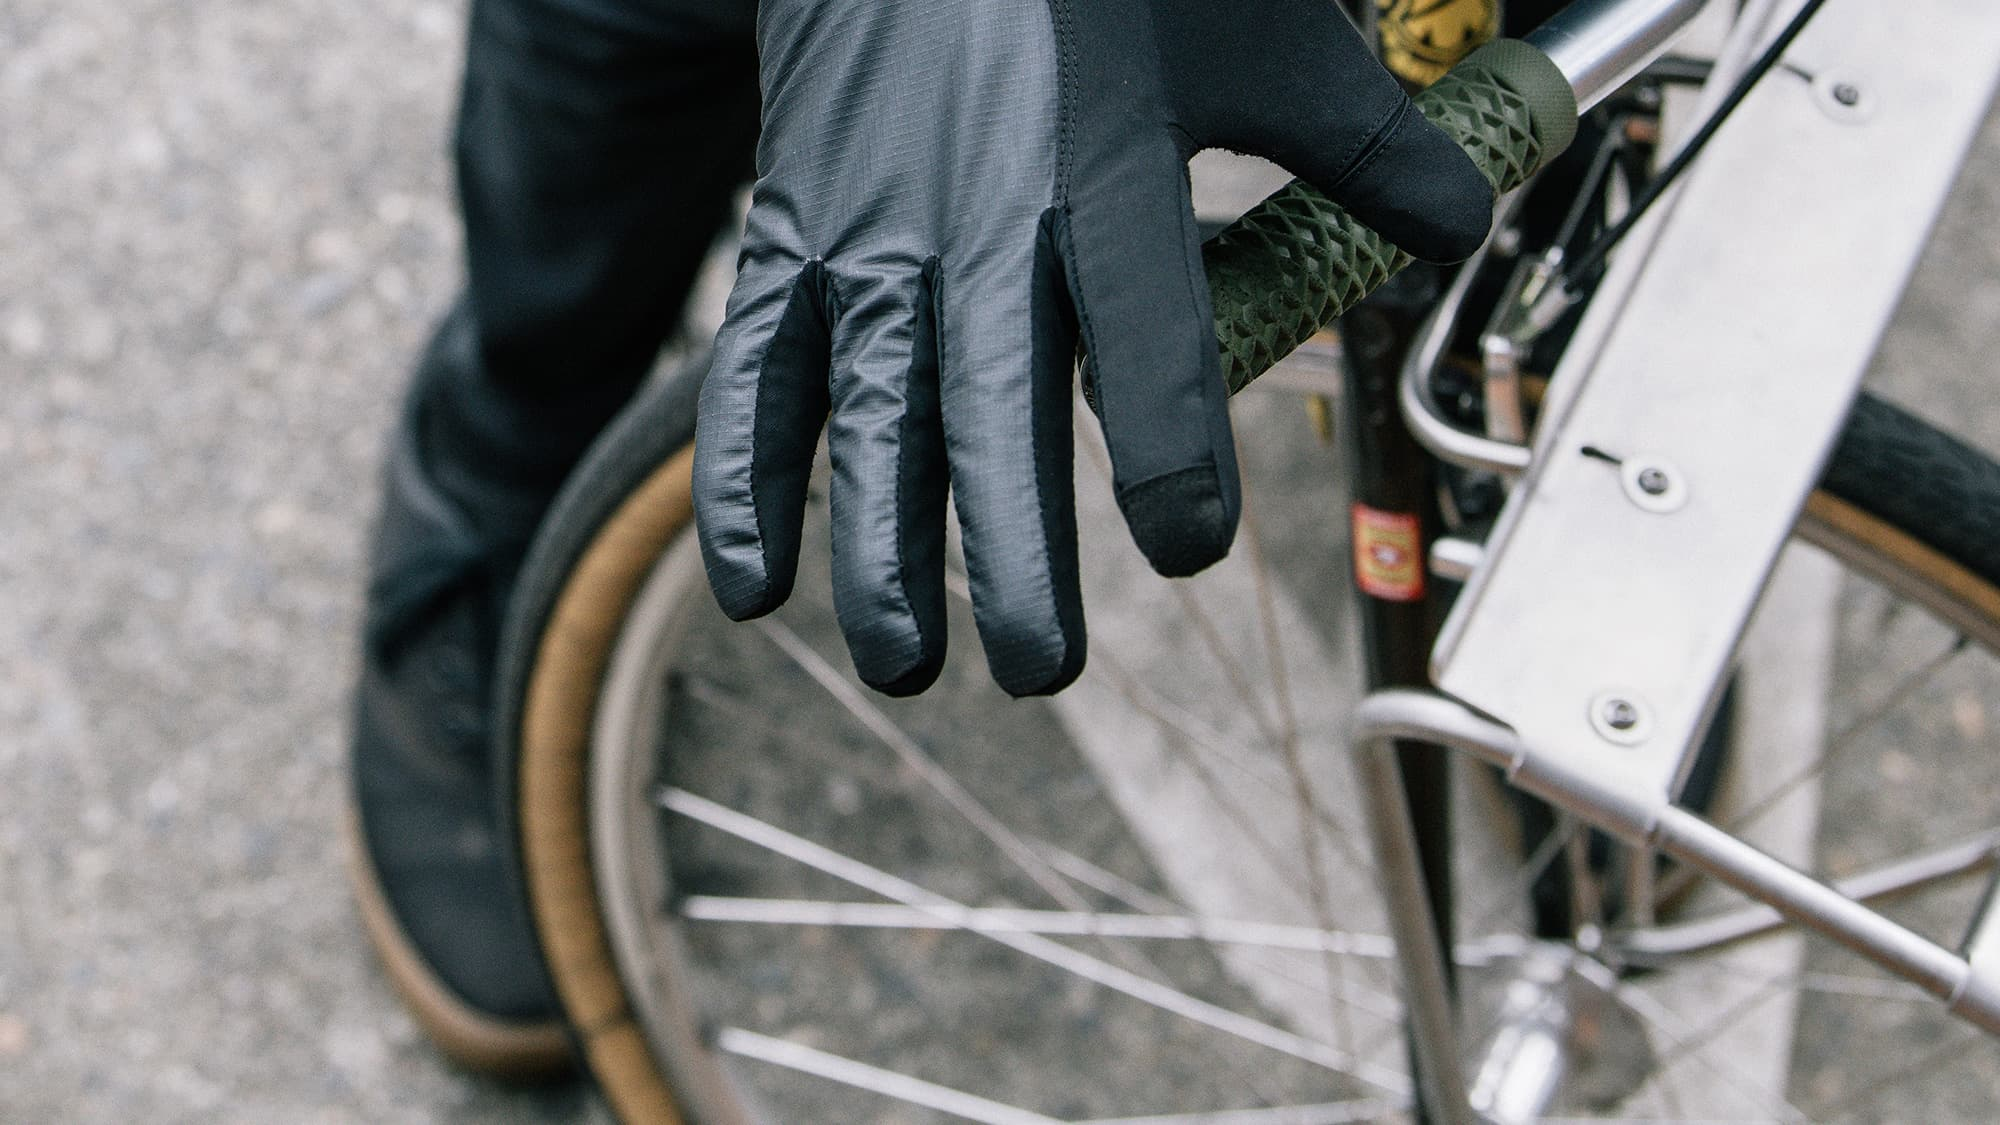 riding with cycling gloves